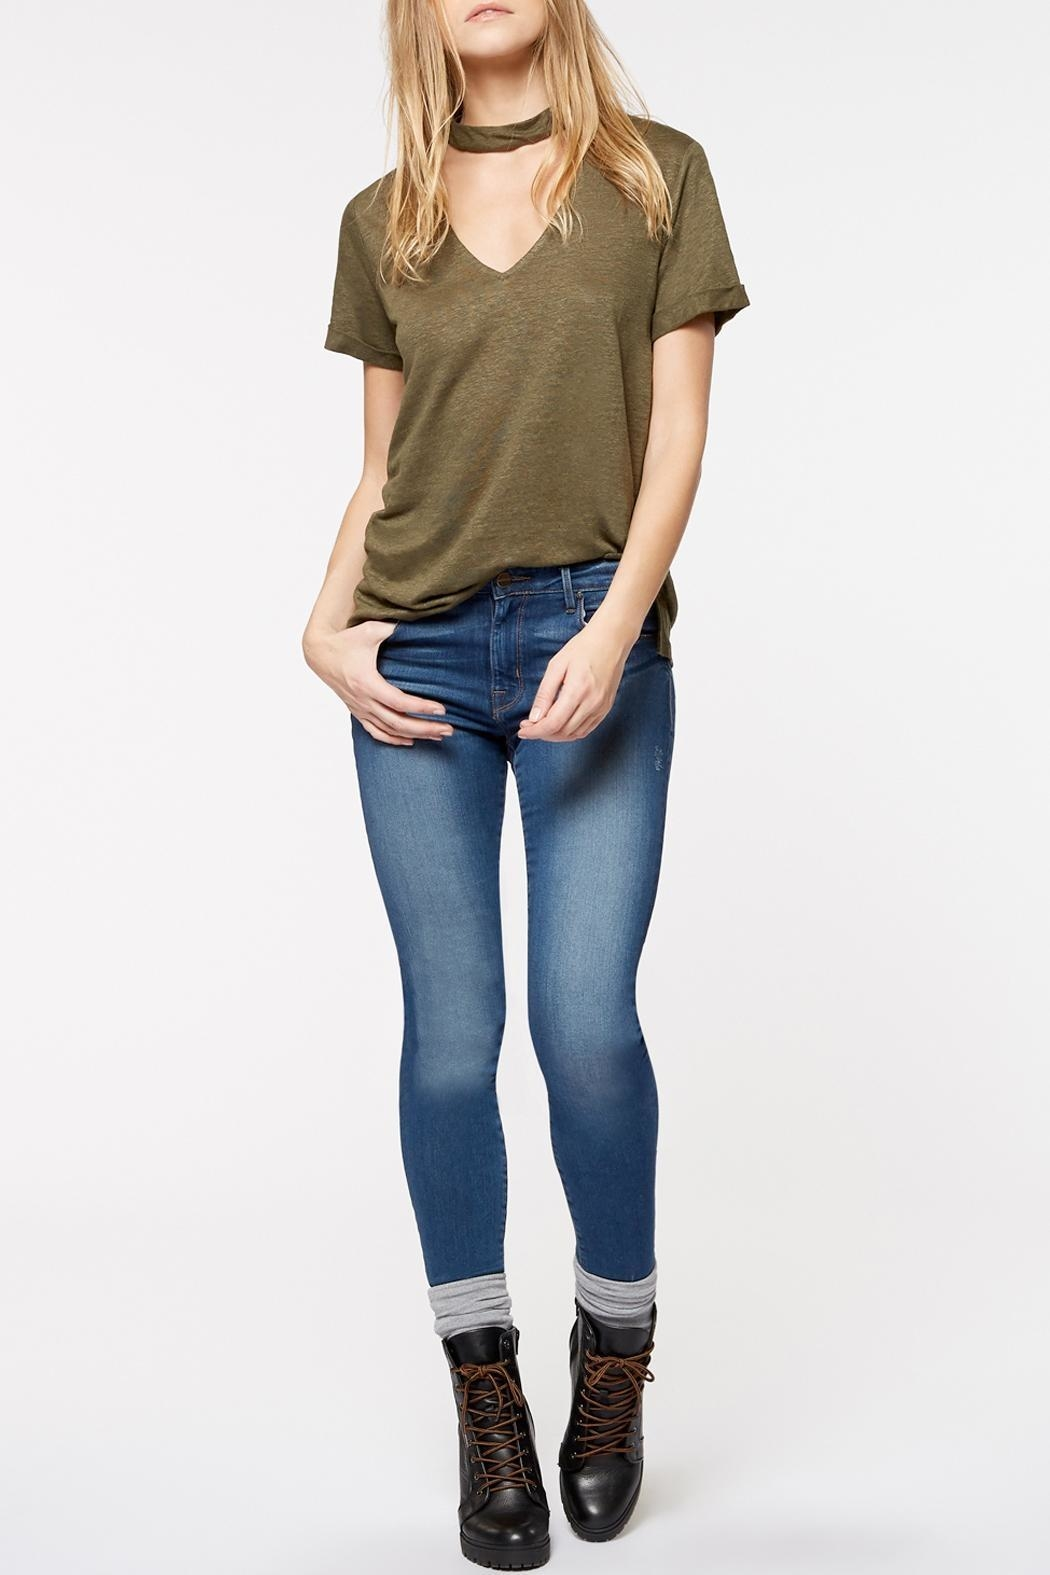 Sanctuary Joanna Choker Tee - Front Cropped Image